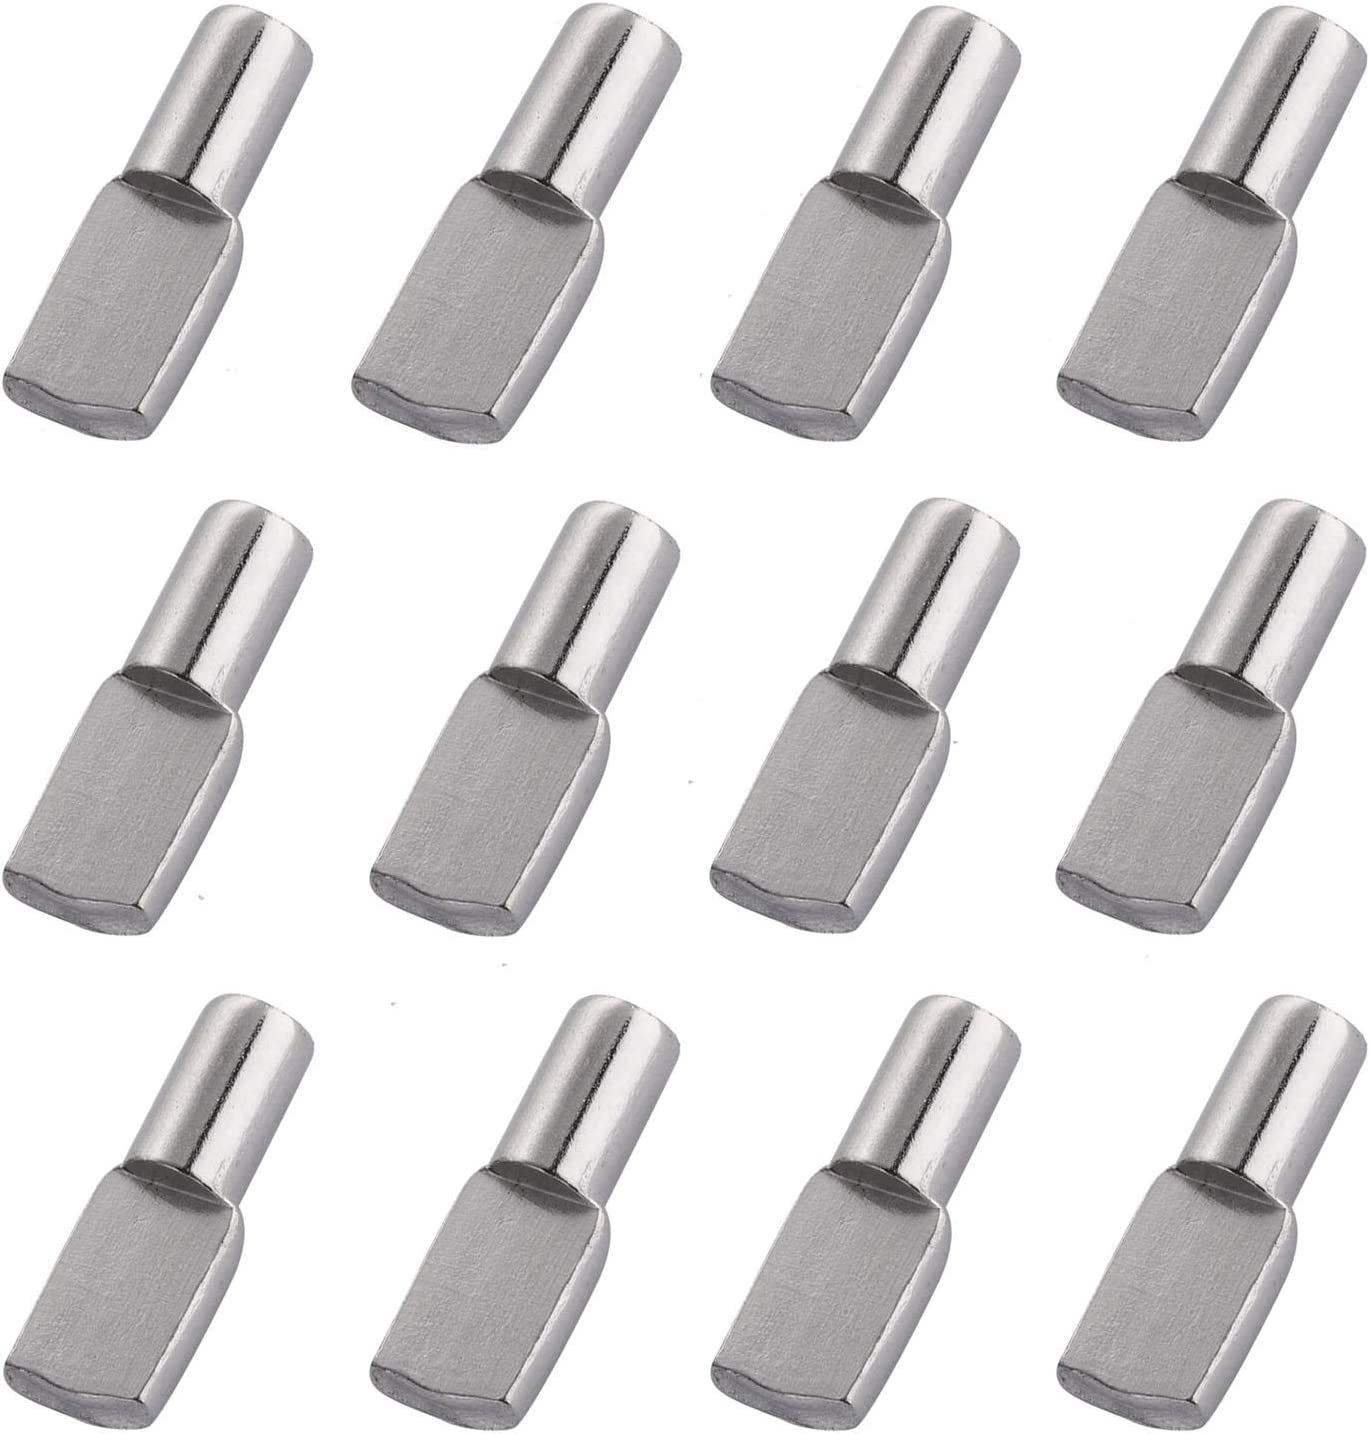 50 Max 59% Super popular specialty store OFF Pieces Shelf Pegs Pins 5mm Spoon Furniture Cabinet Supp Shape